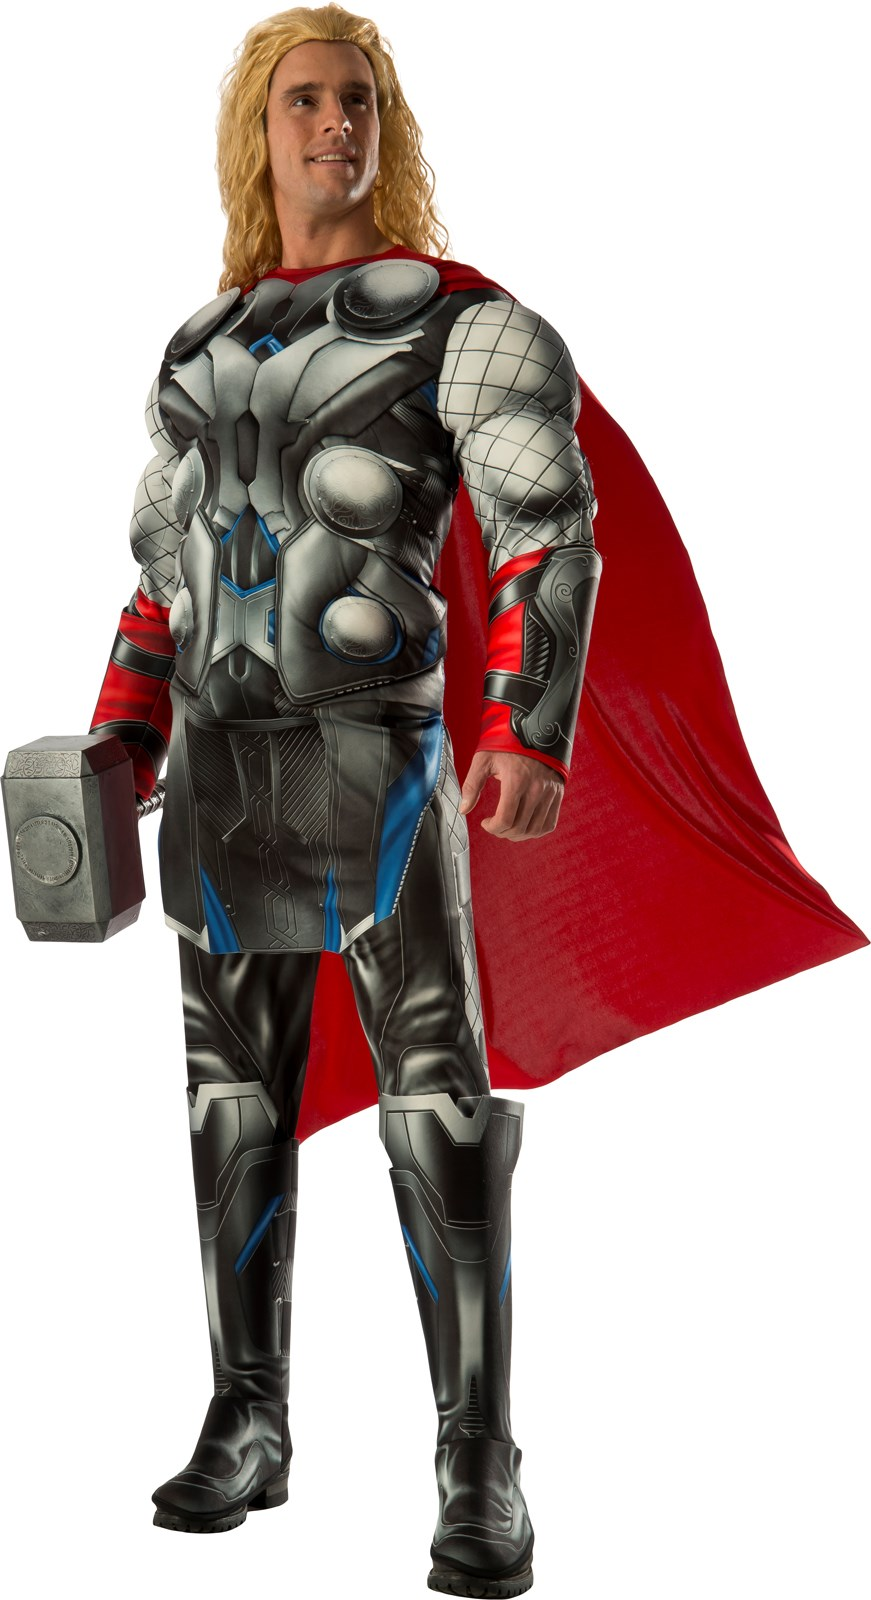 Avengers 2 - Age of Ultron: Mens Deluxe Thor Costume One-Size